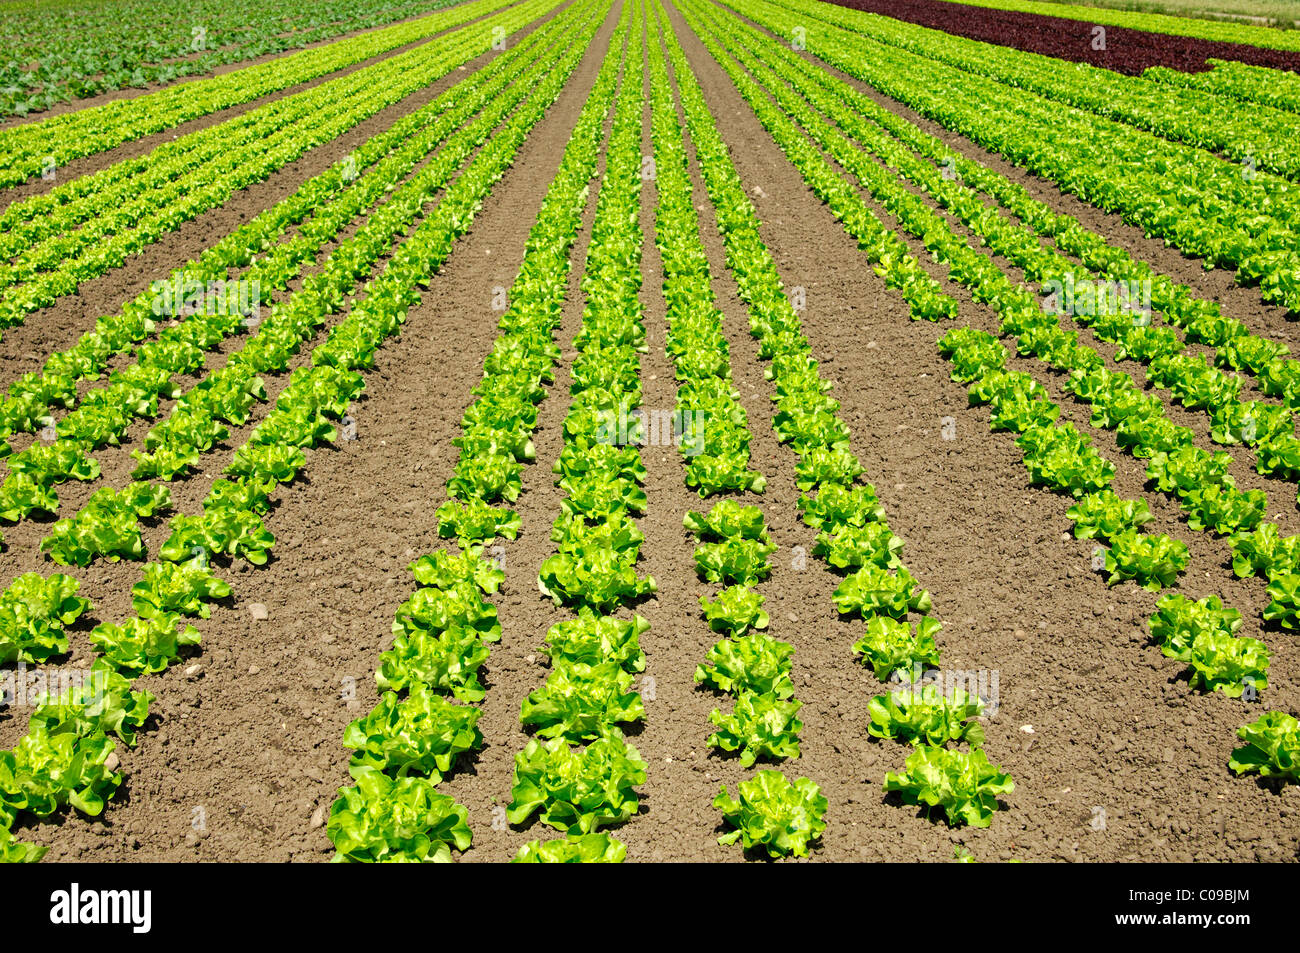 Outdoor cultivation of iceberg lettuce - Stock Image